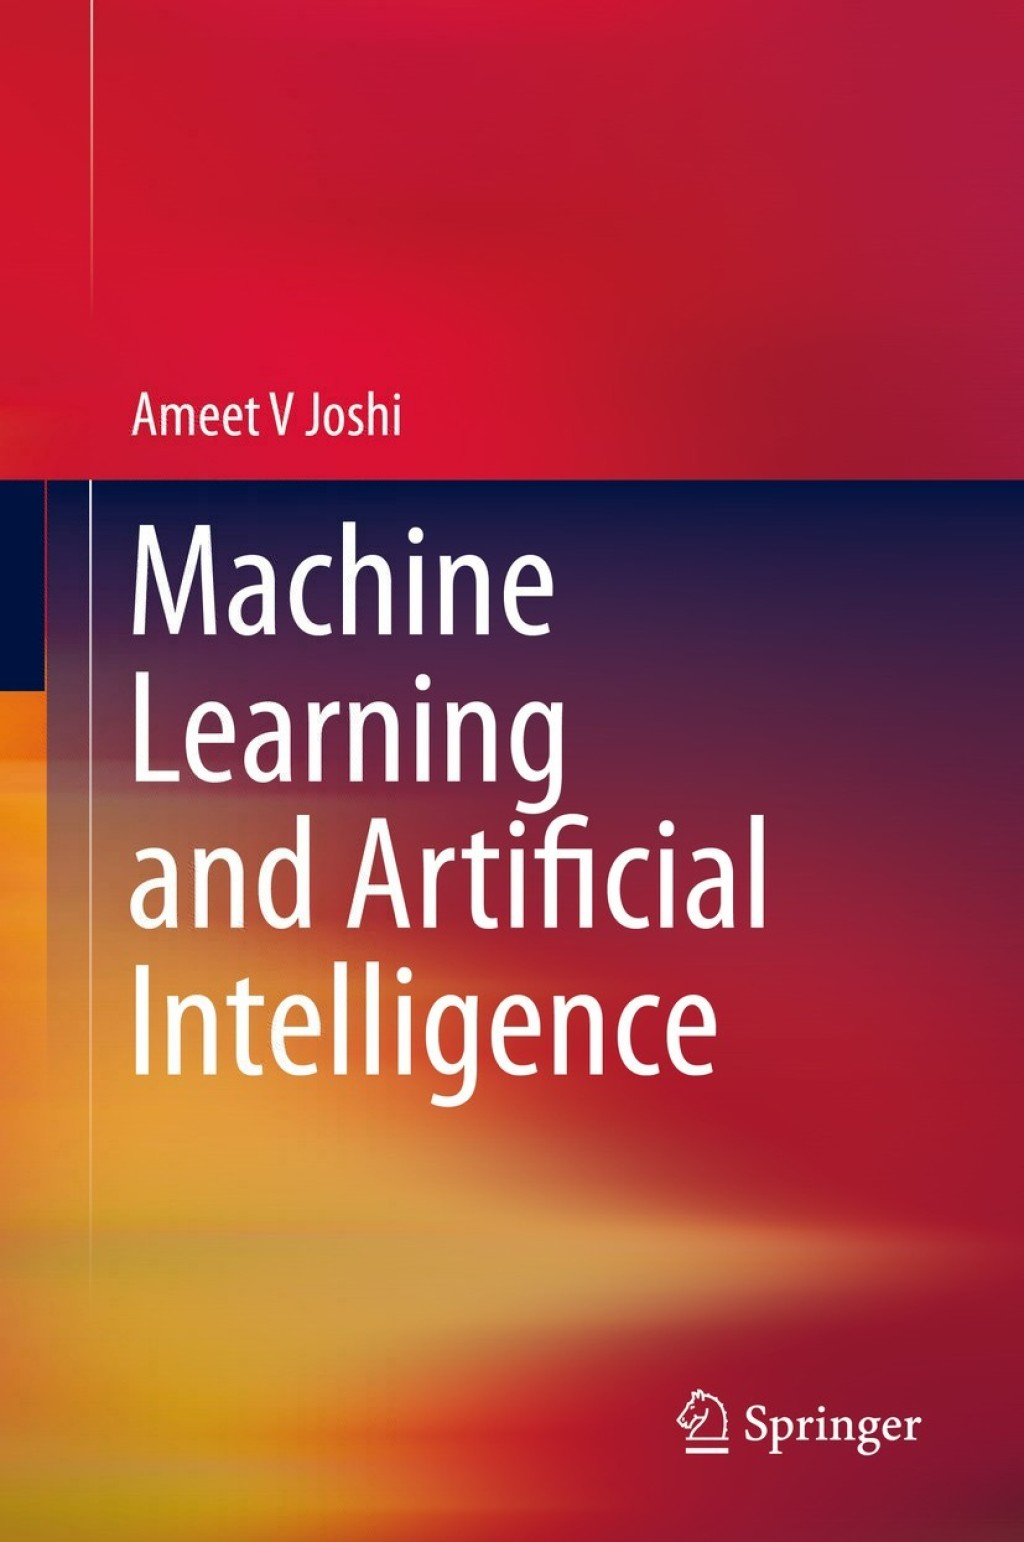 Machine Learning and Artificial Intelligence (eBook) - Ameet V Joshi